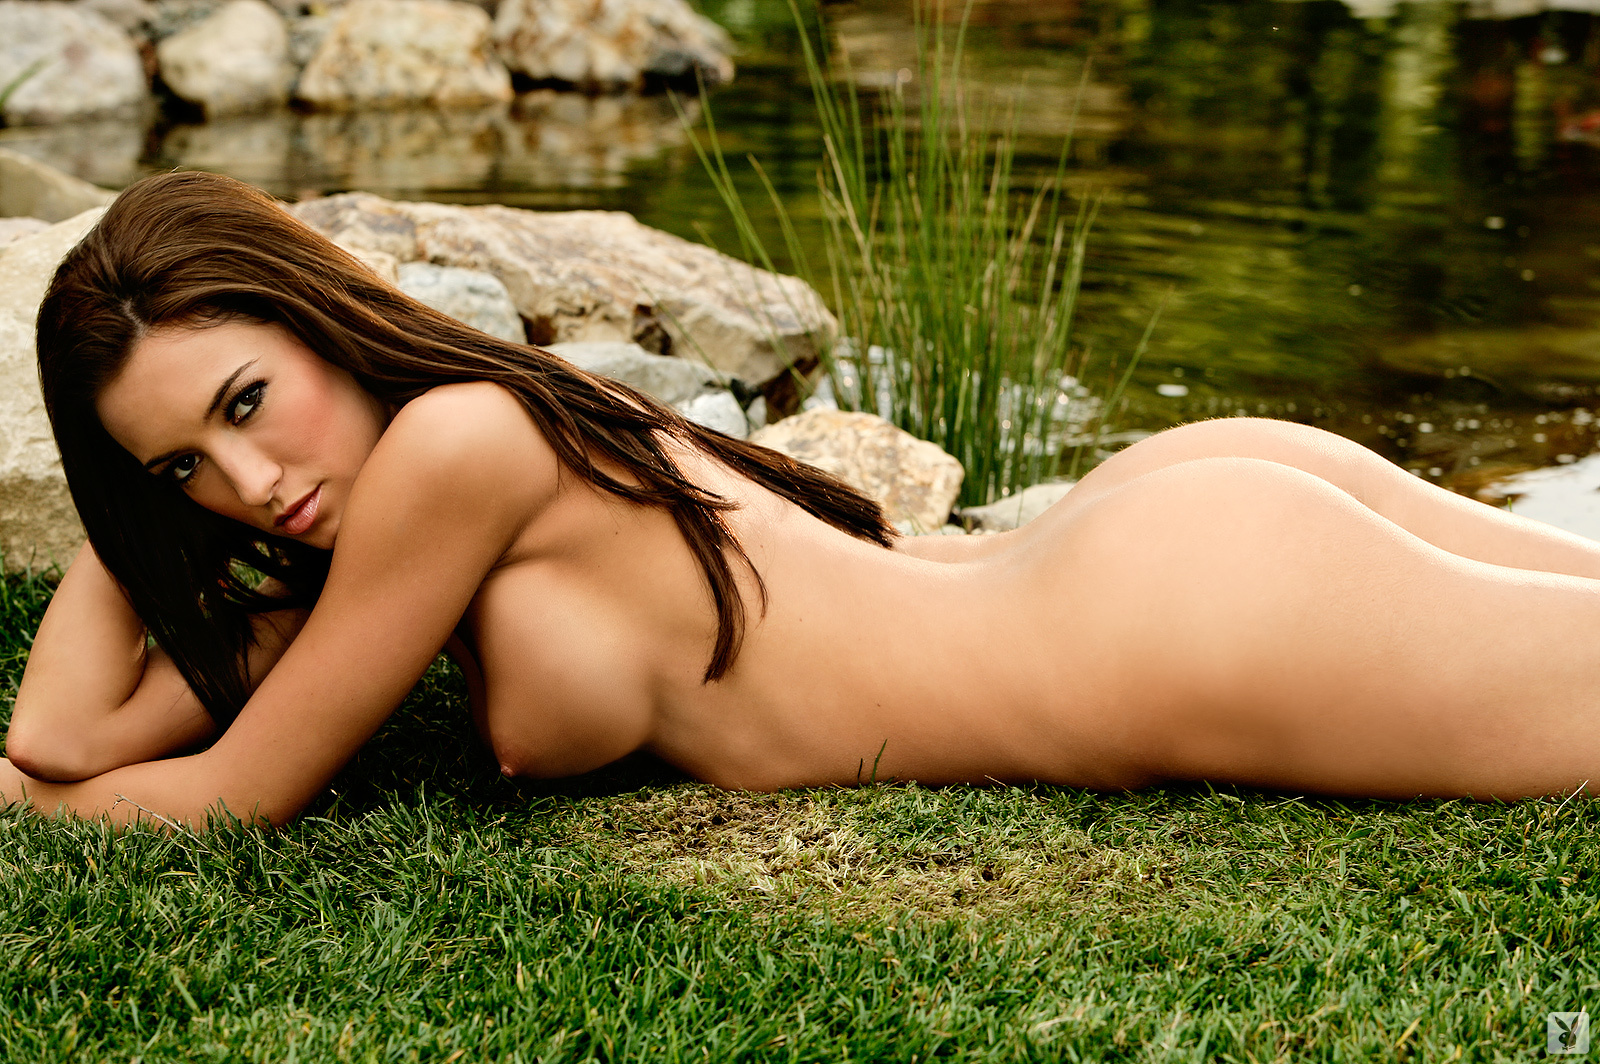 Girls naked in the yard